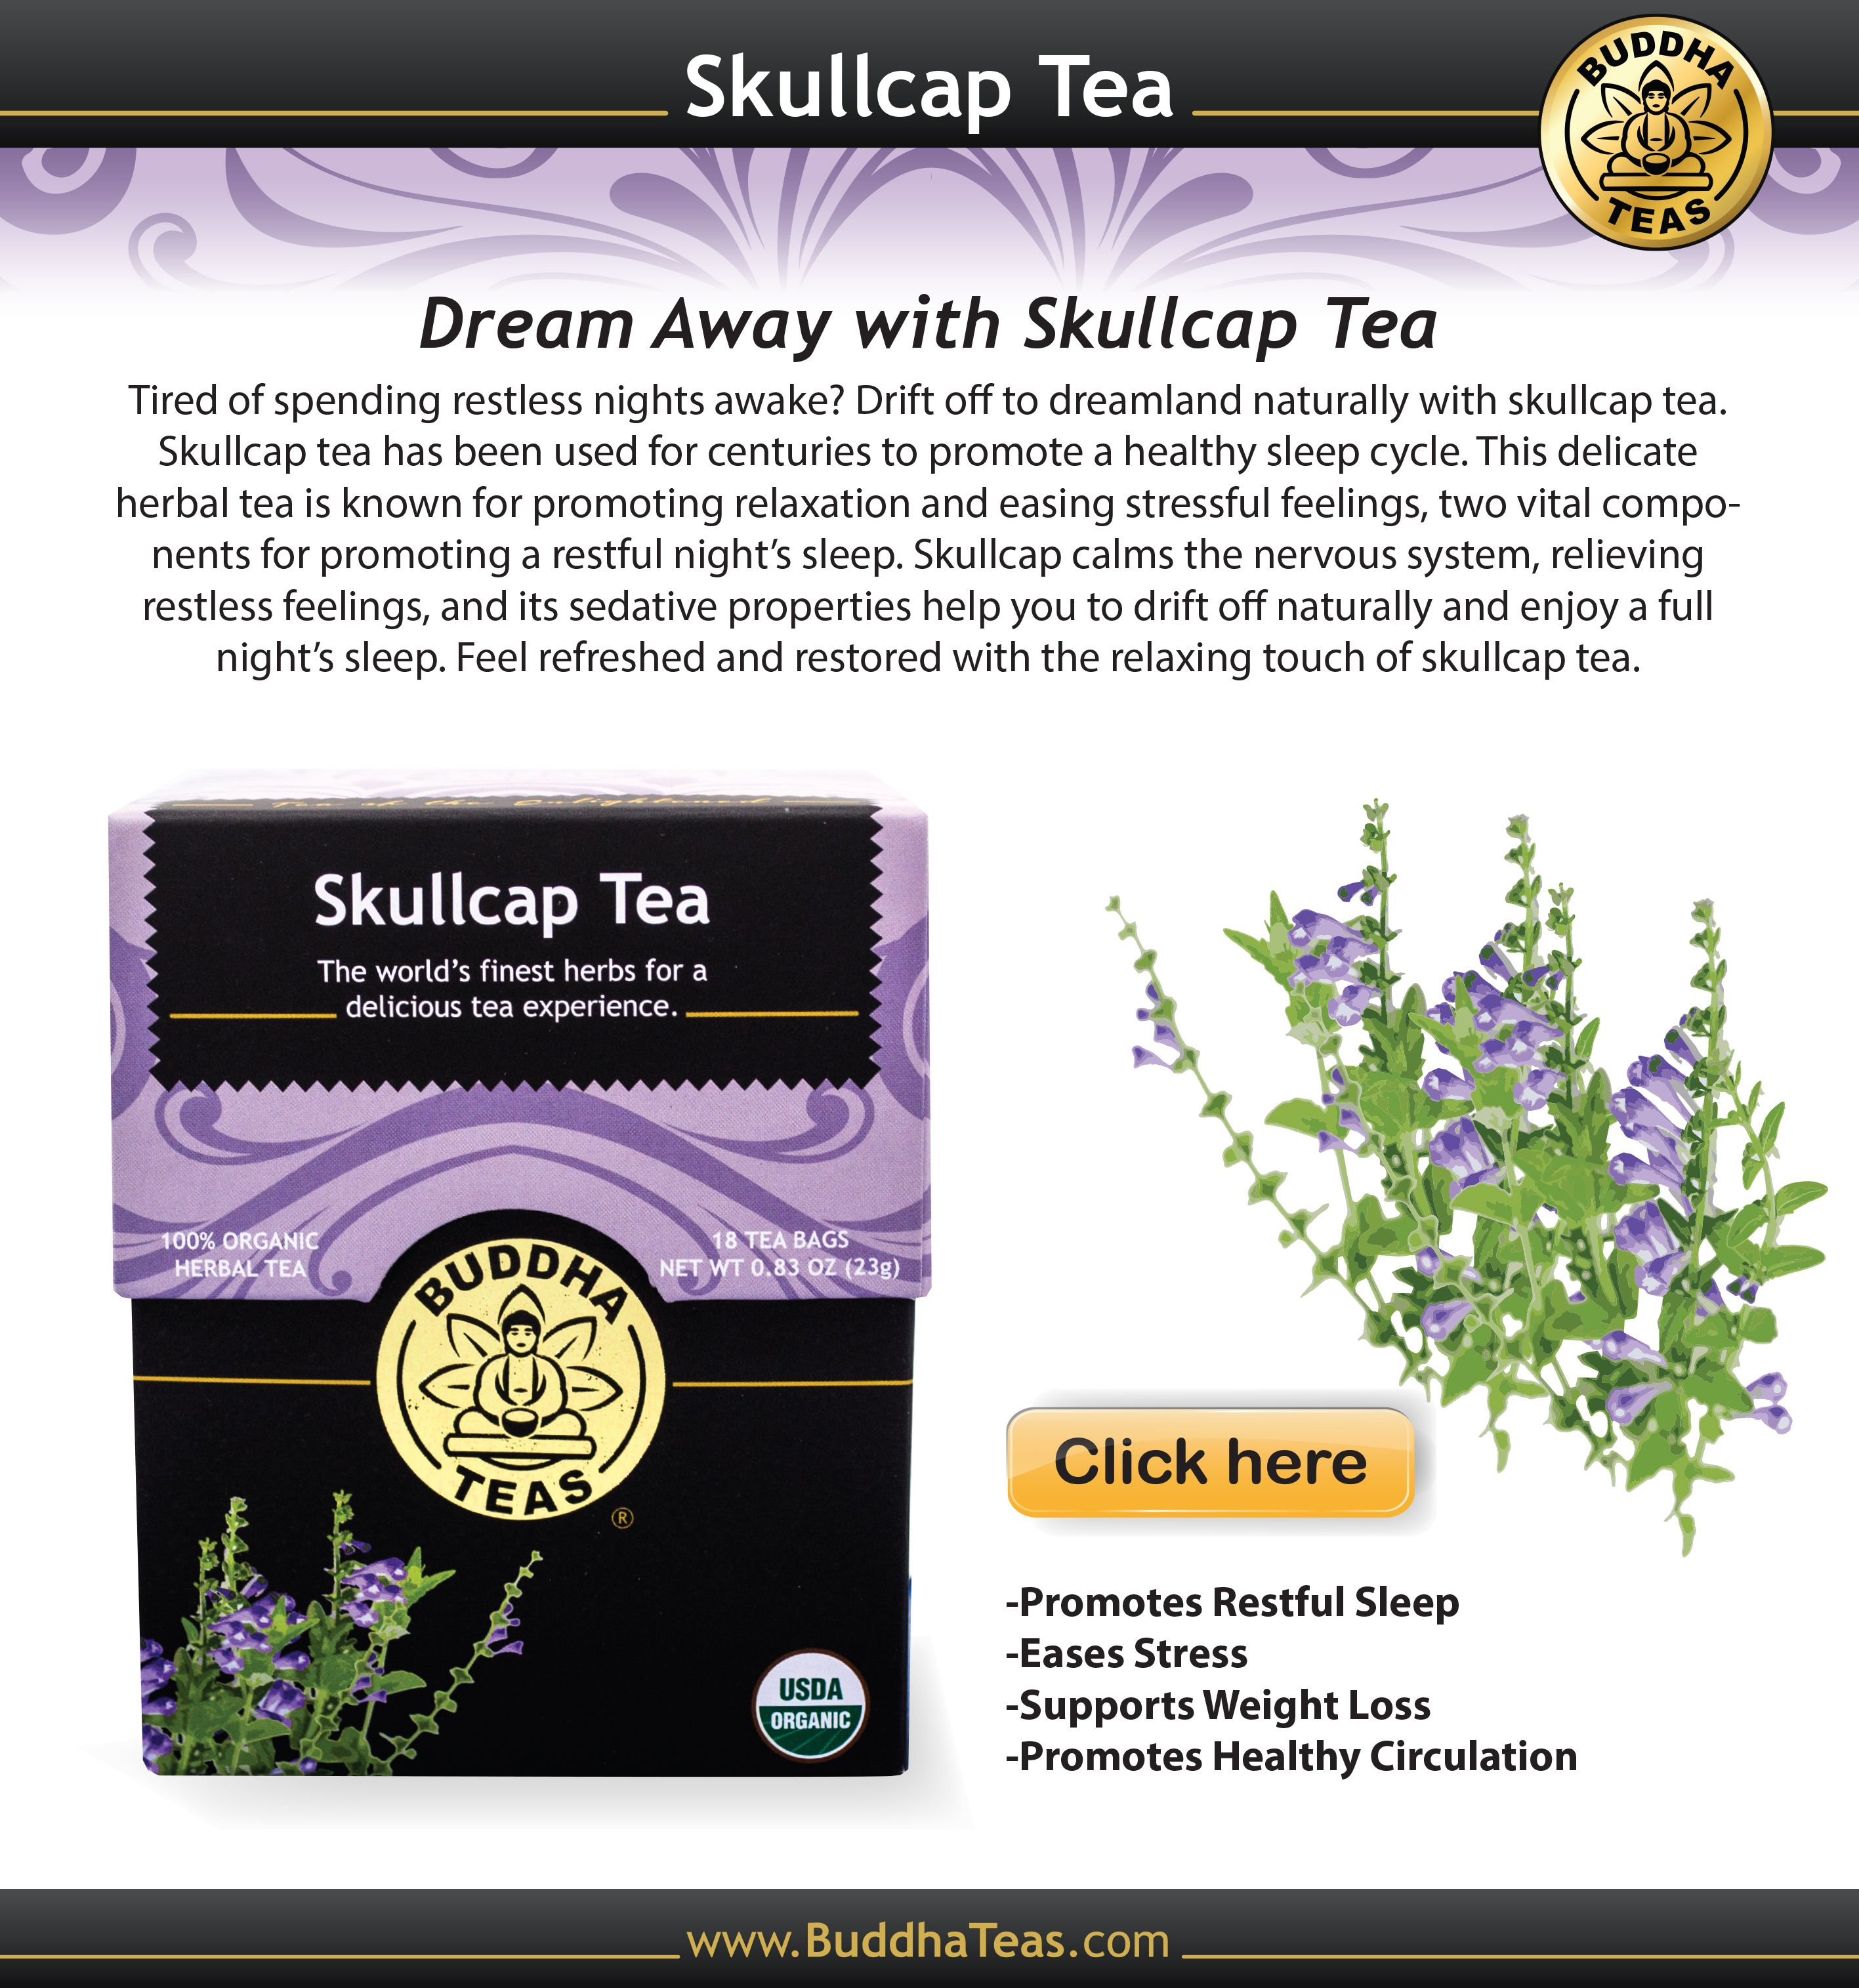 Skullcap Tea in 2019 | Tea Coupons and Promotions | Tea benefits